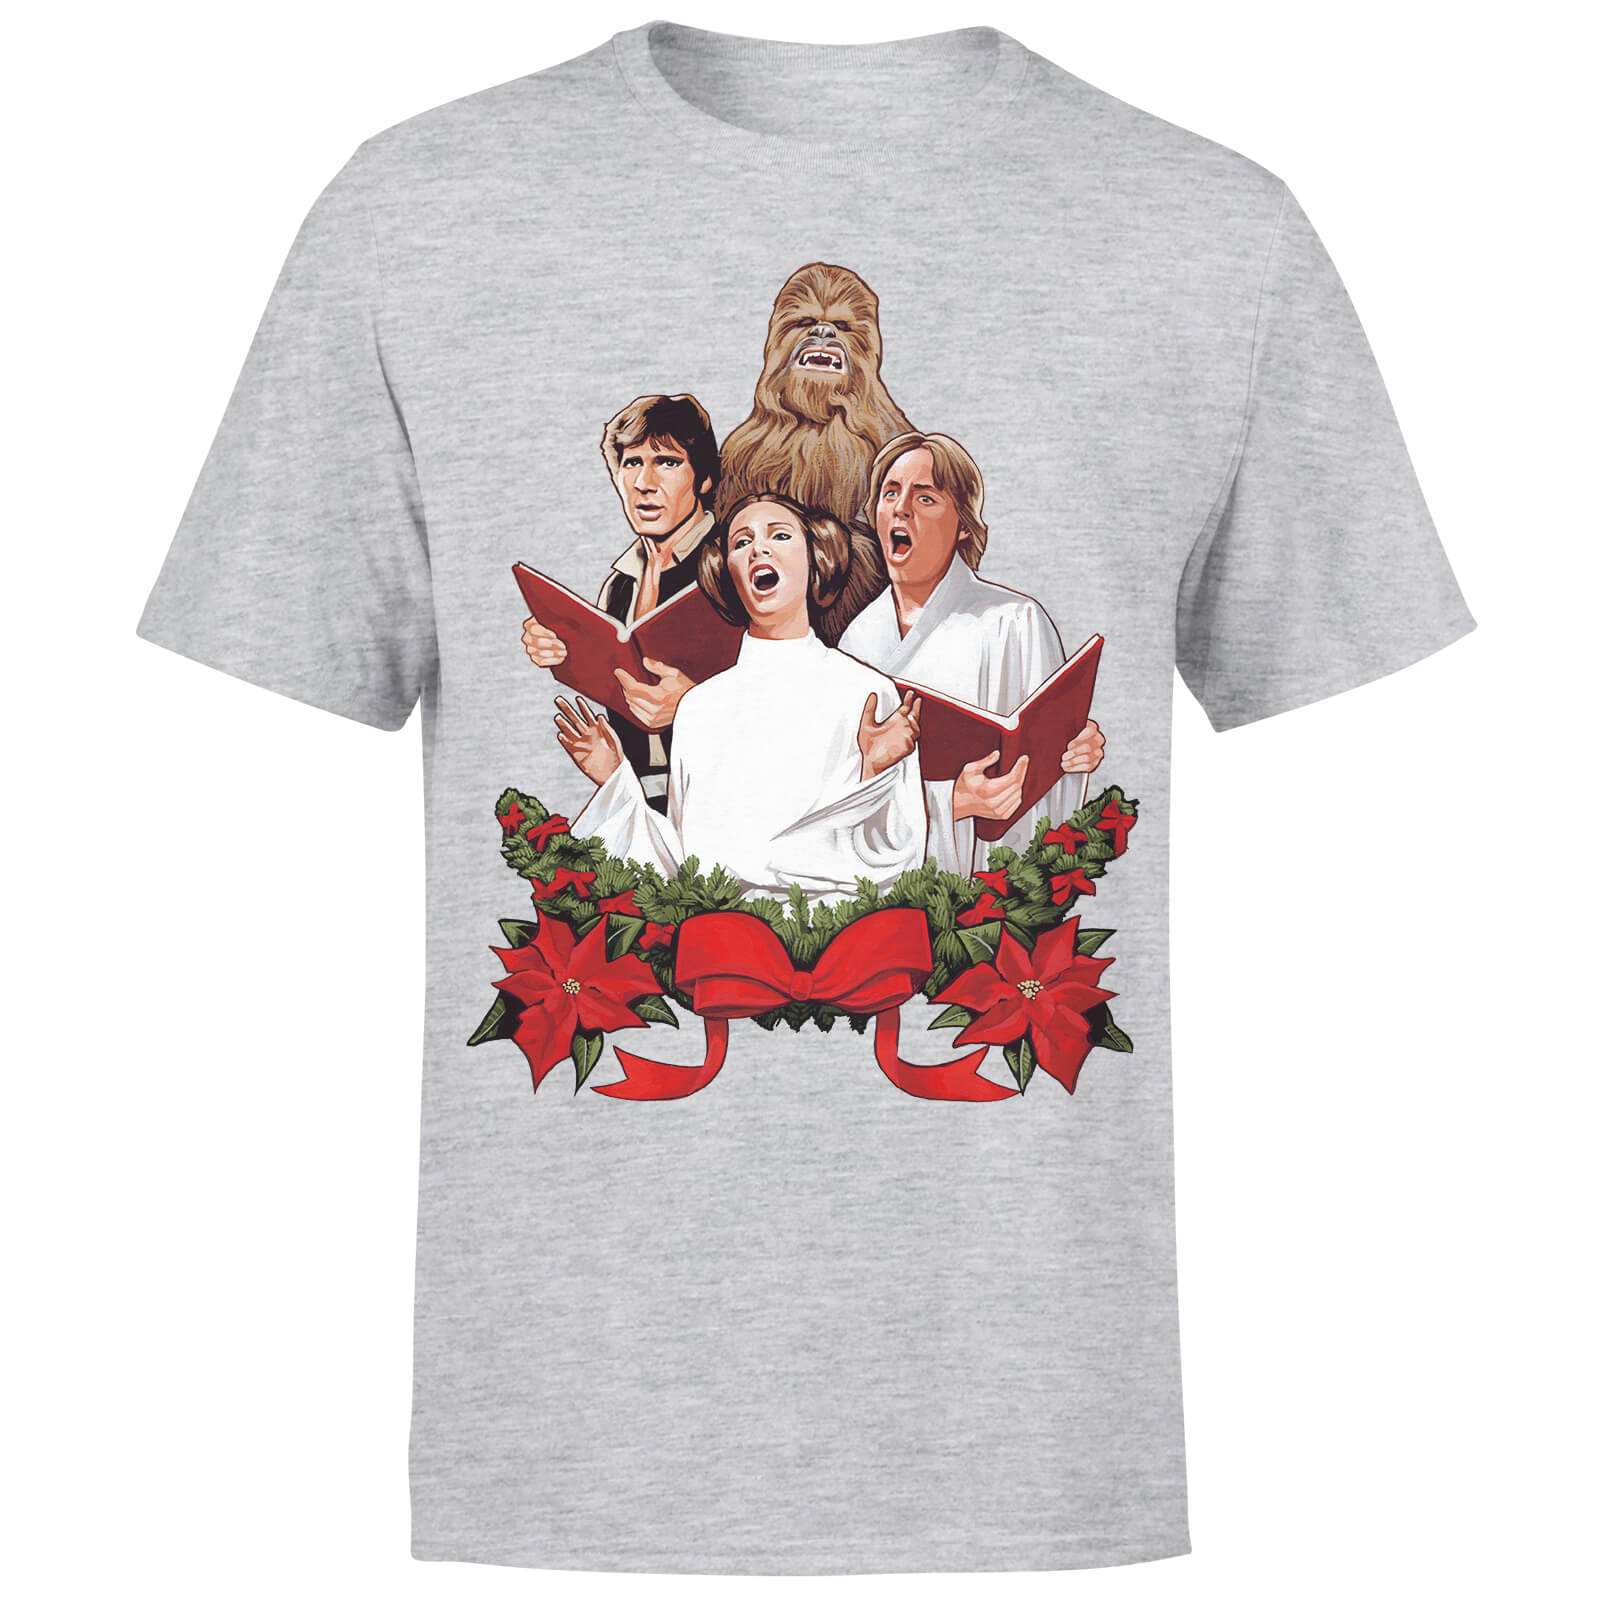 Star Wars Christmas Jedi Carols Grey T-Shirt